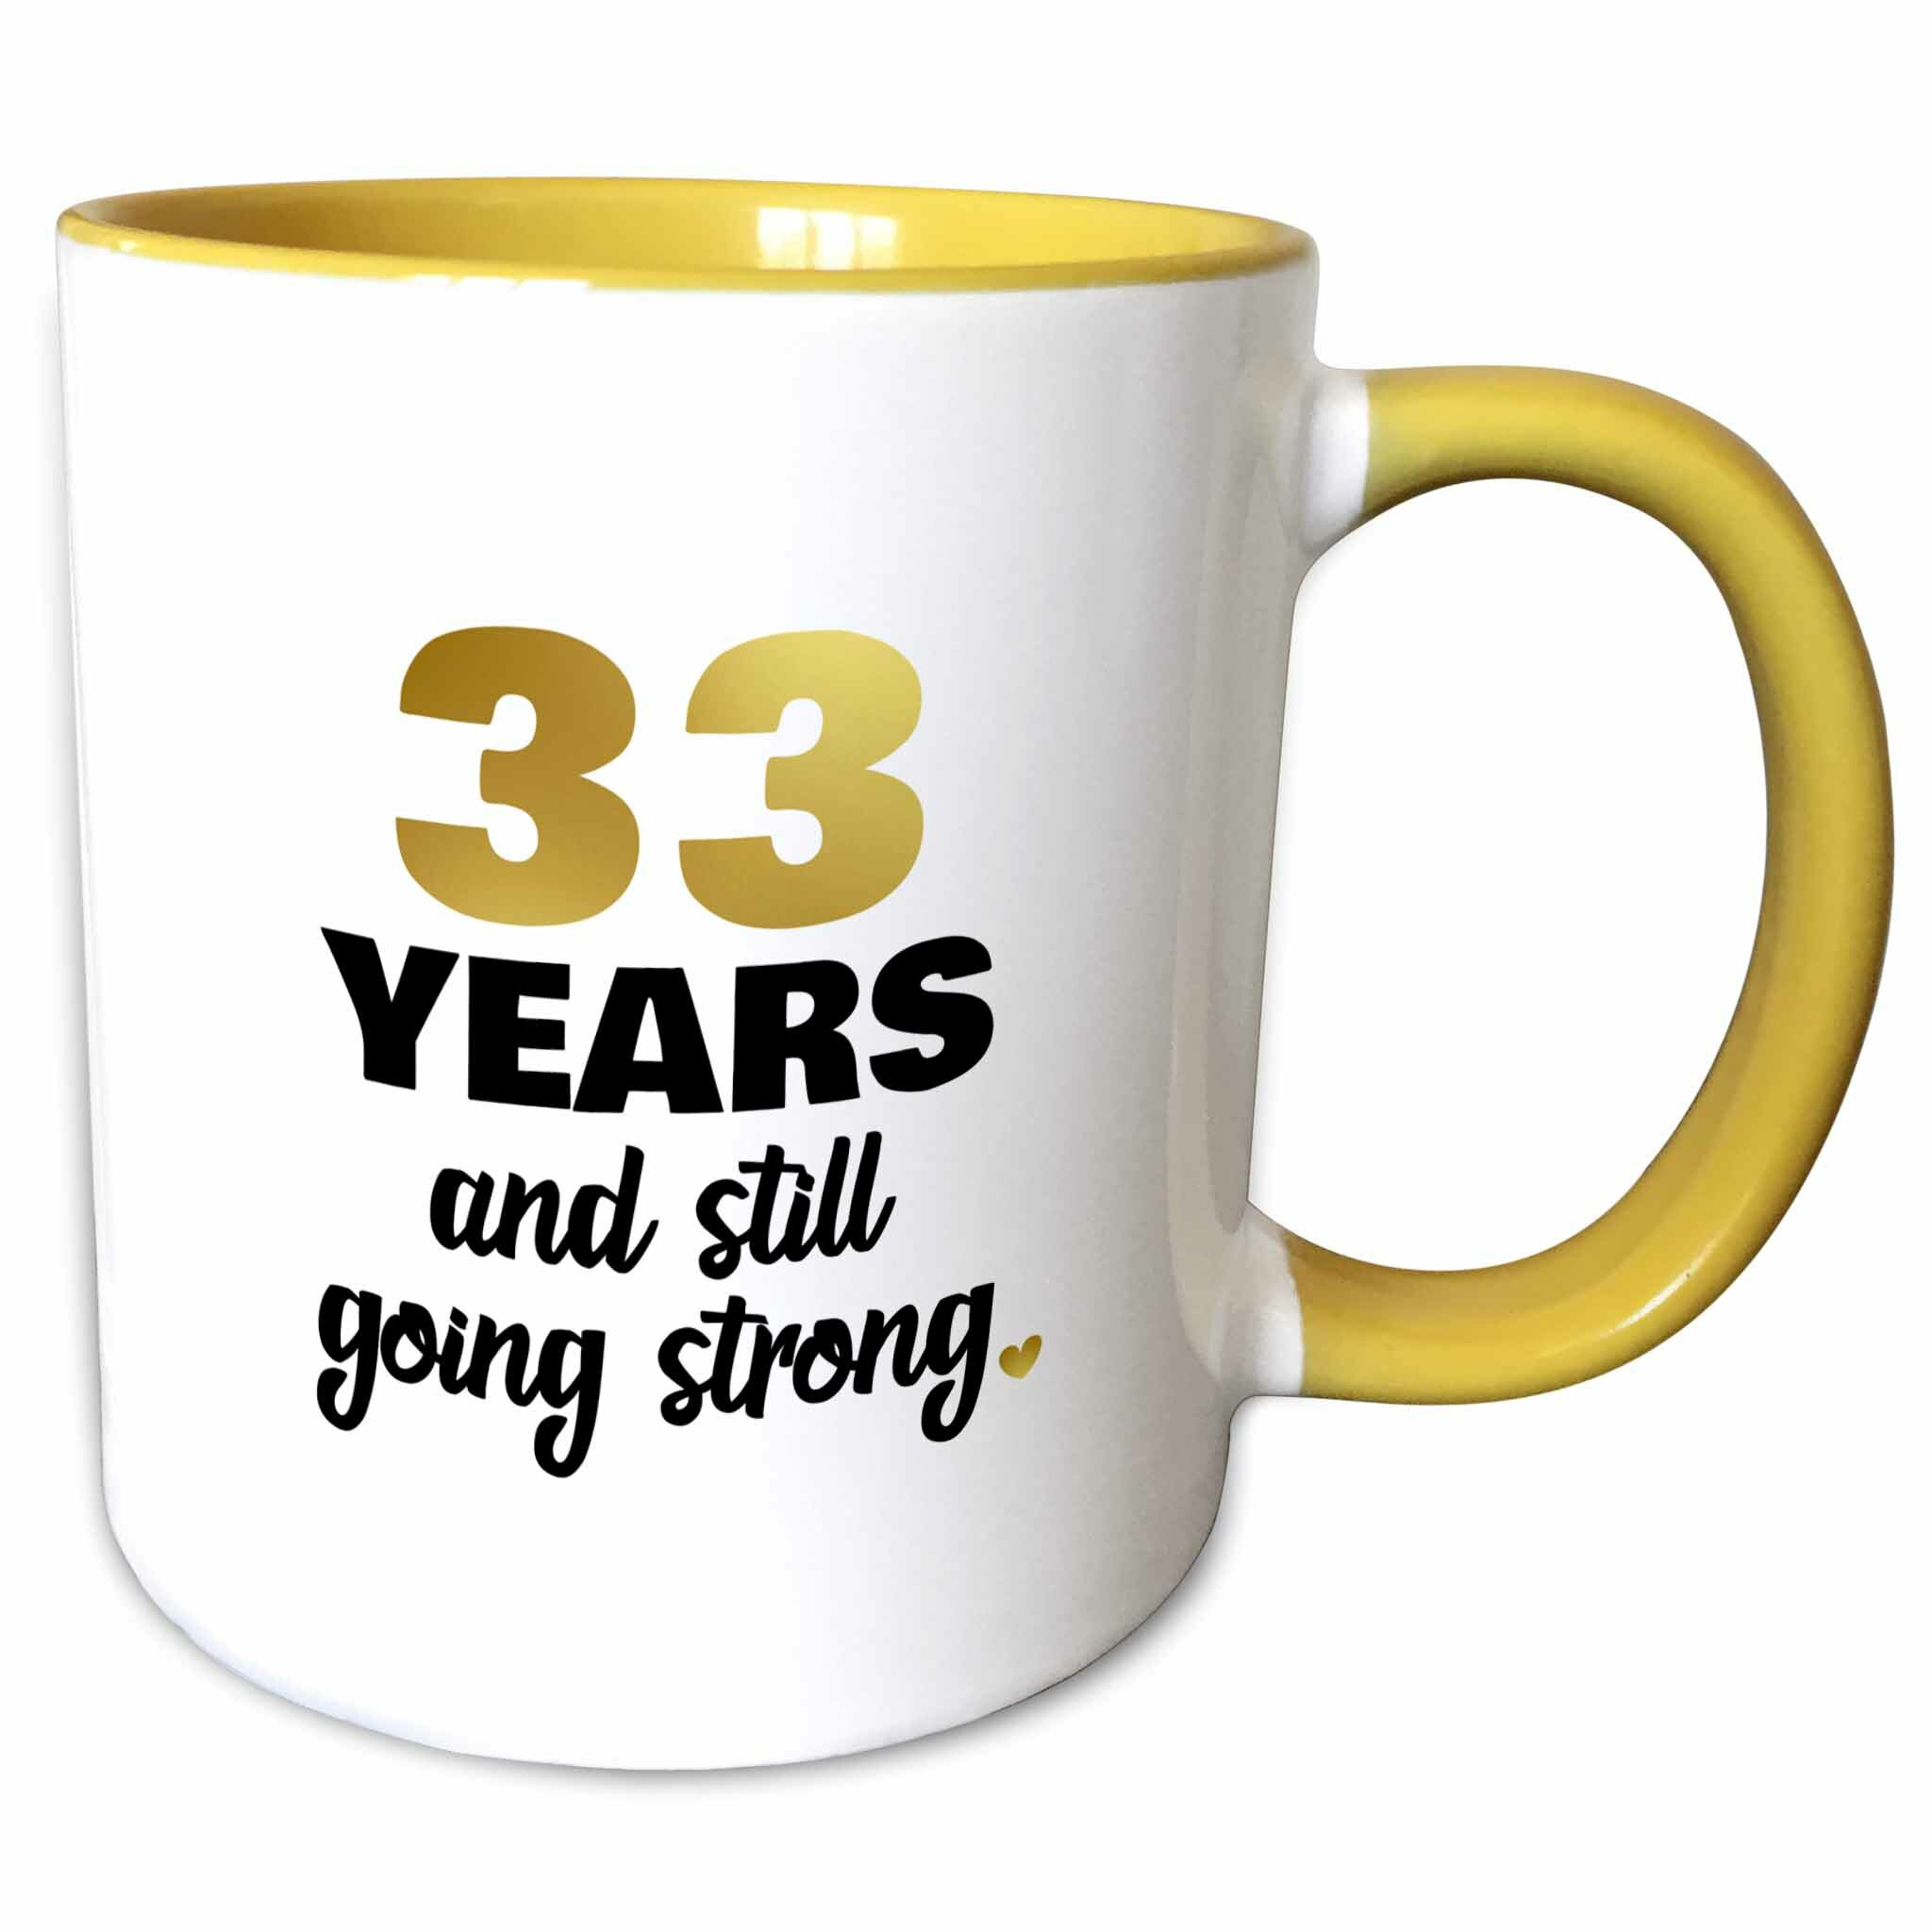 The Party Aisle 33 Year Anniversary Still Going Strong 33rd Wedding Anniversary Gift Coffee Mug | Wayfair  sc 1 st  Wayfair & The Party Aisle 33 Year Anniversary Still Going Strong 33rd Wedding ...